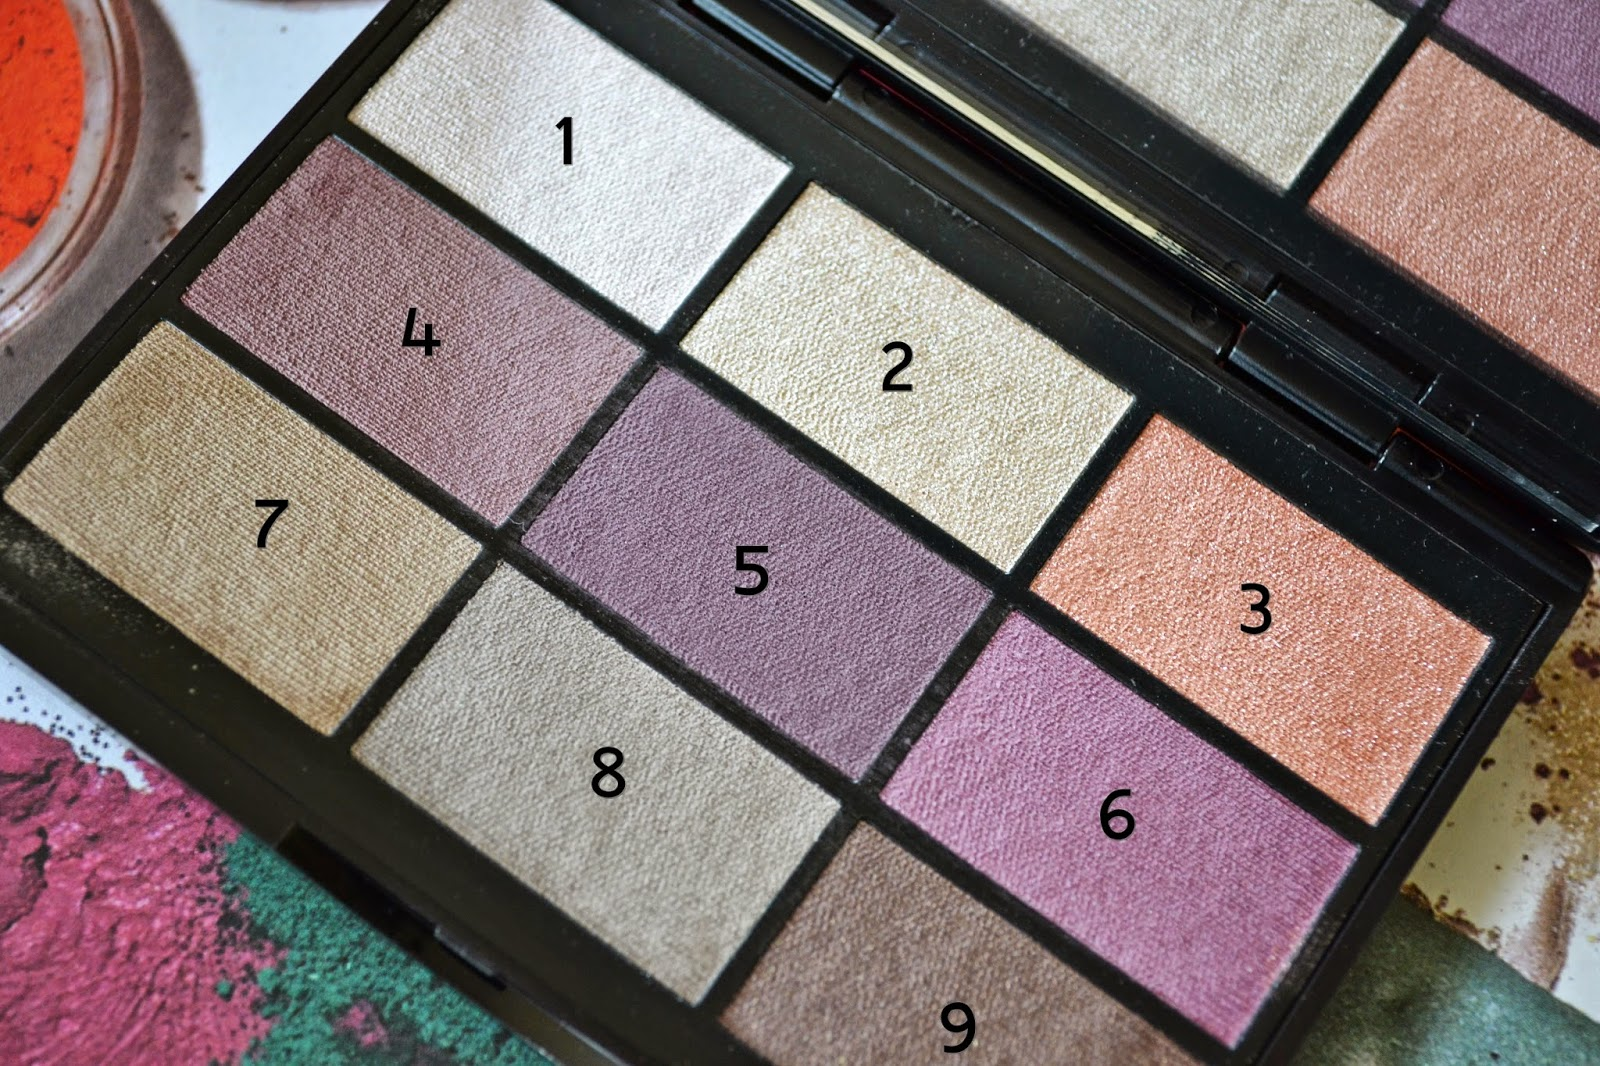 GOSH 9 Shades Eye Shadow Palette To Enjoy In New York Review - Aspiring Londoner